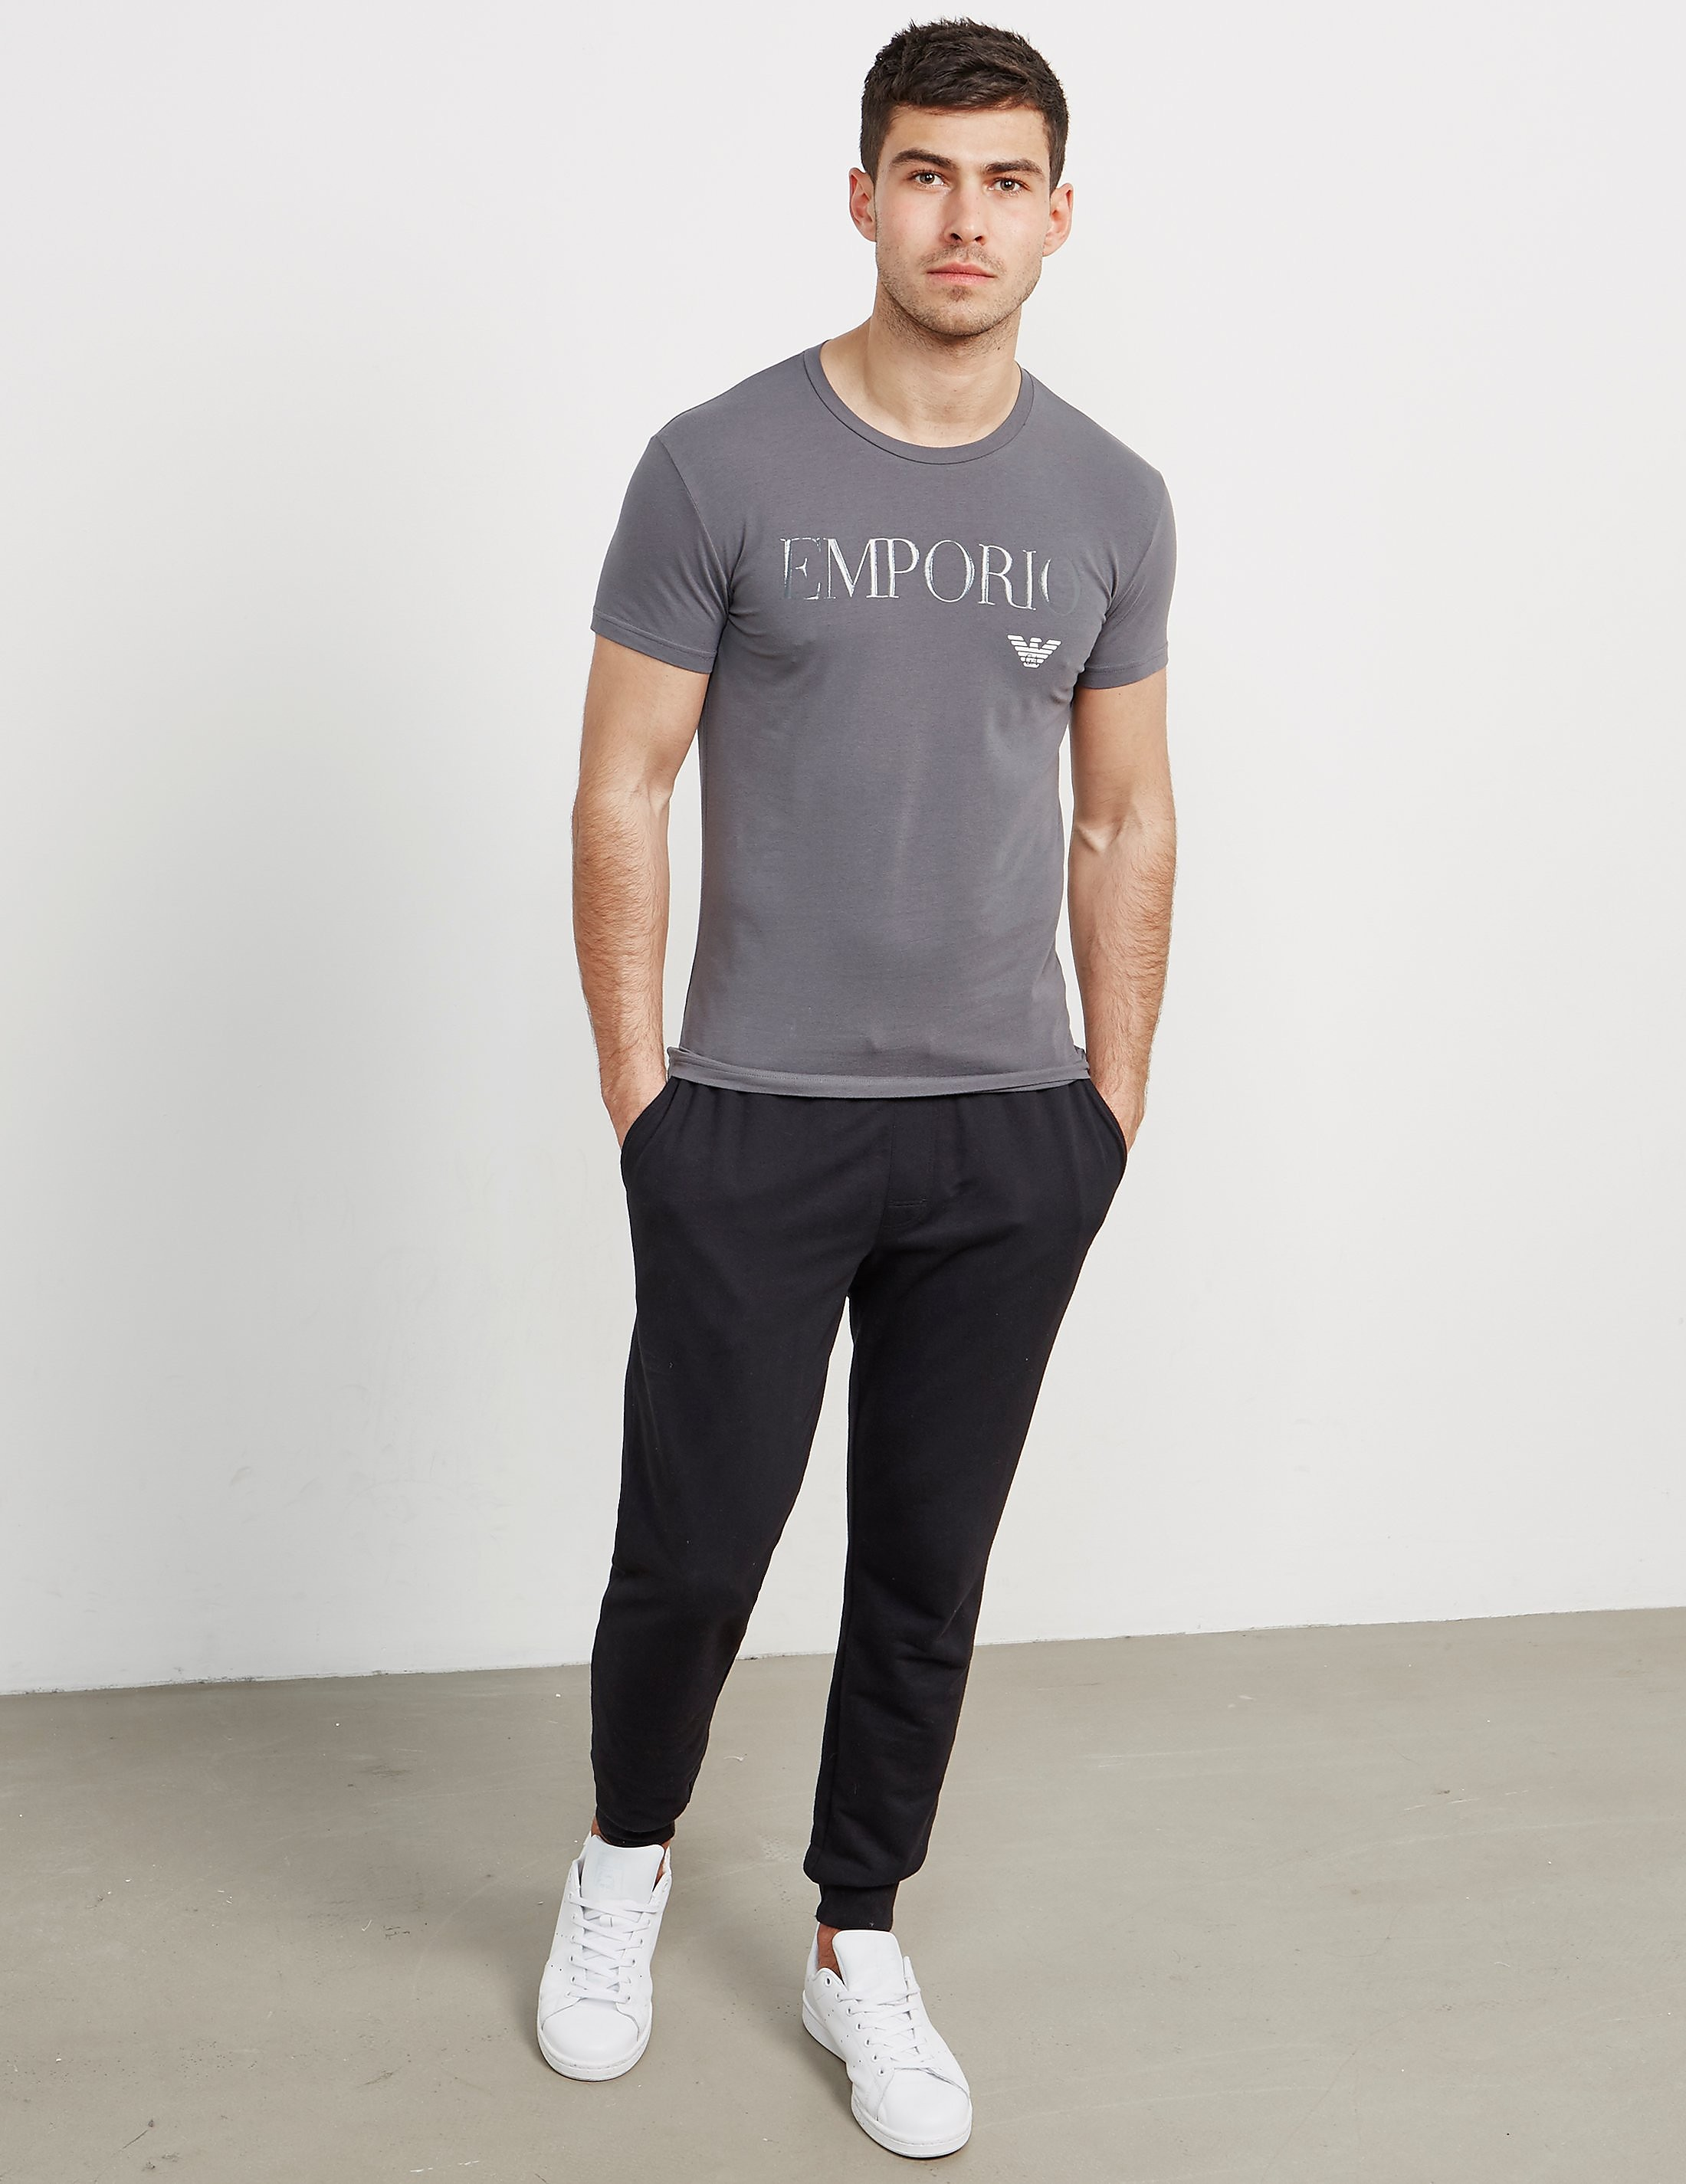 Emporio Armani Gel Print Short Sleeve T-Shirt